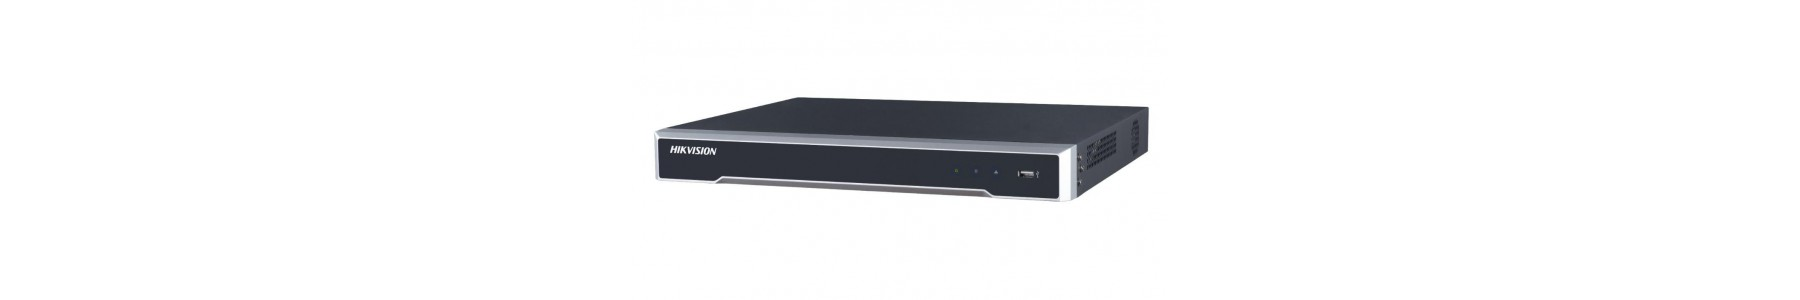 NVR SERIE 7600 K (HDD Incluso)